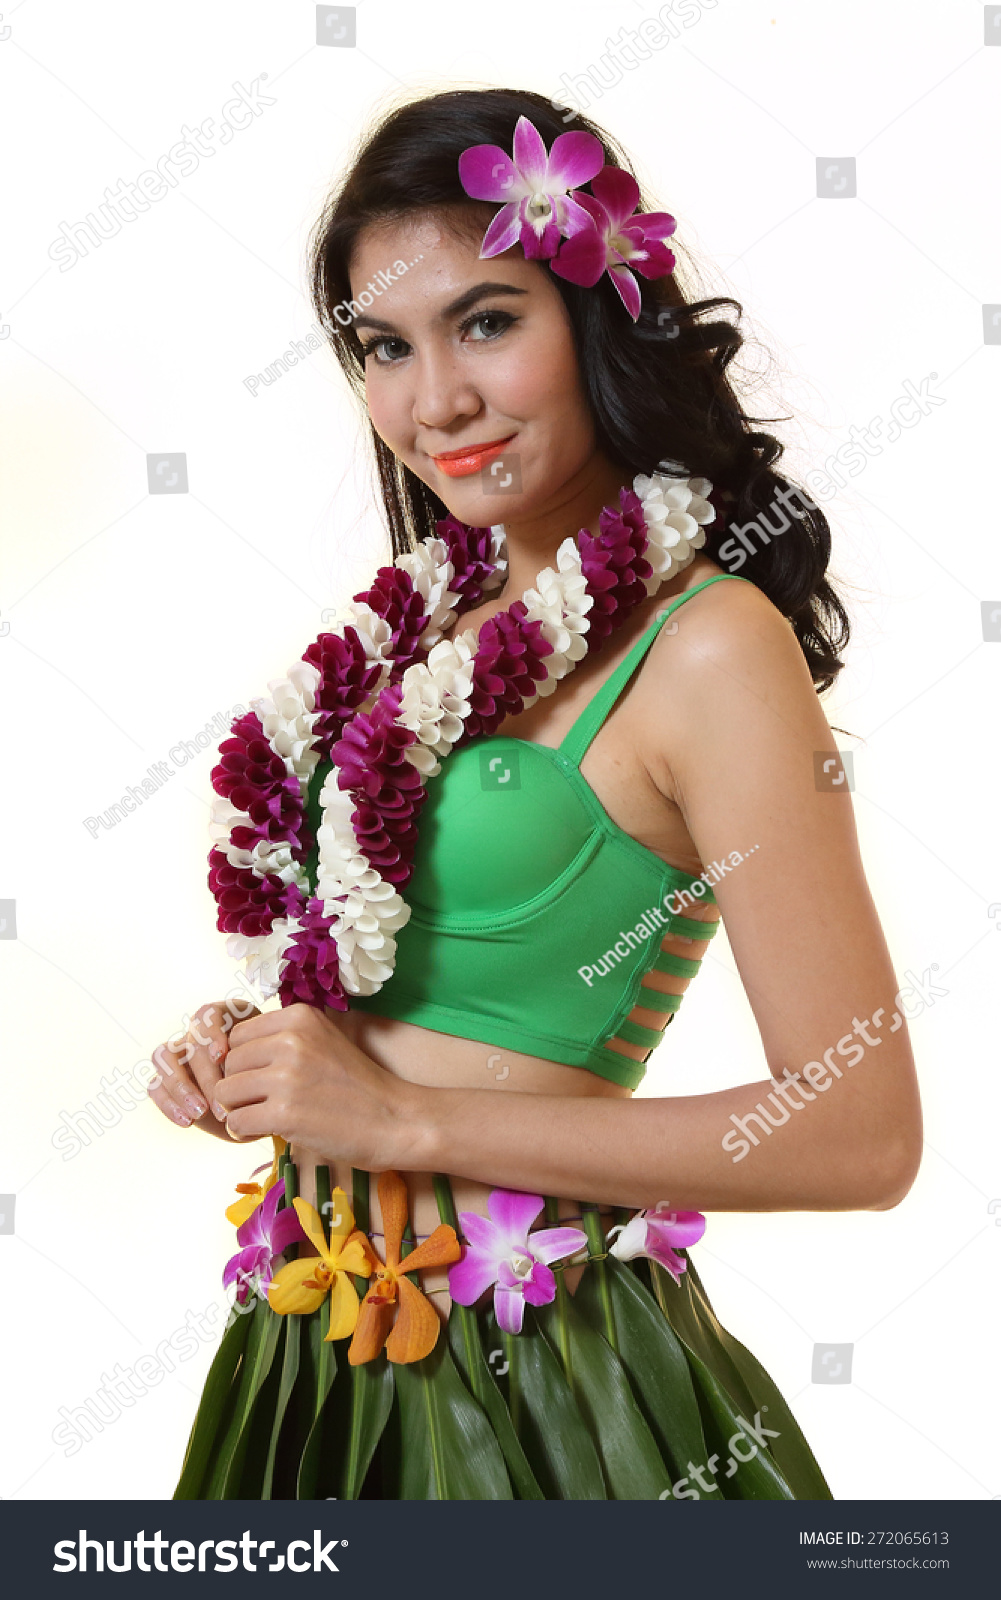 Beautiful woman dress hawaiian style flower stock photo 272065613 beautiful woman dress in hawaiian style with flower lei garland of orchids on white background izmirmasajfo Images